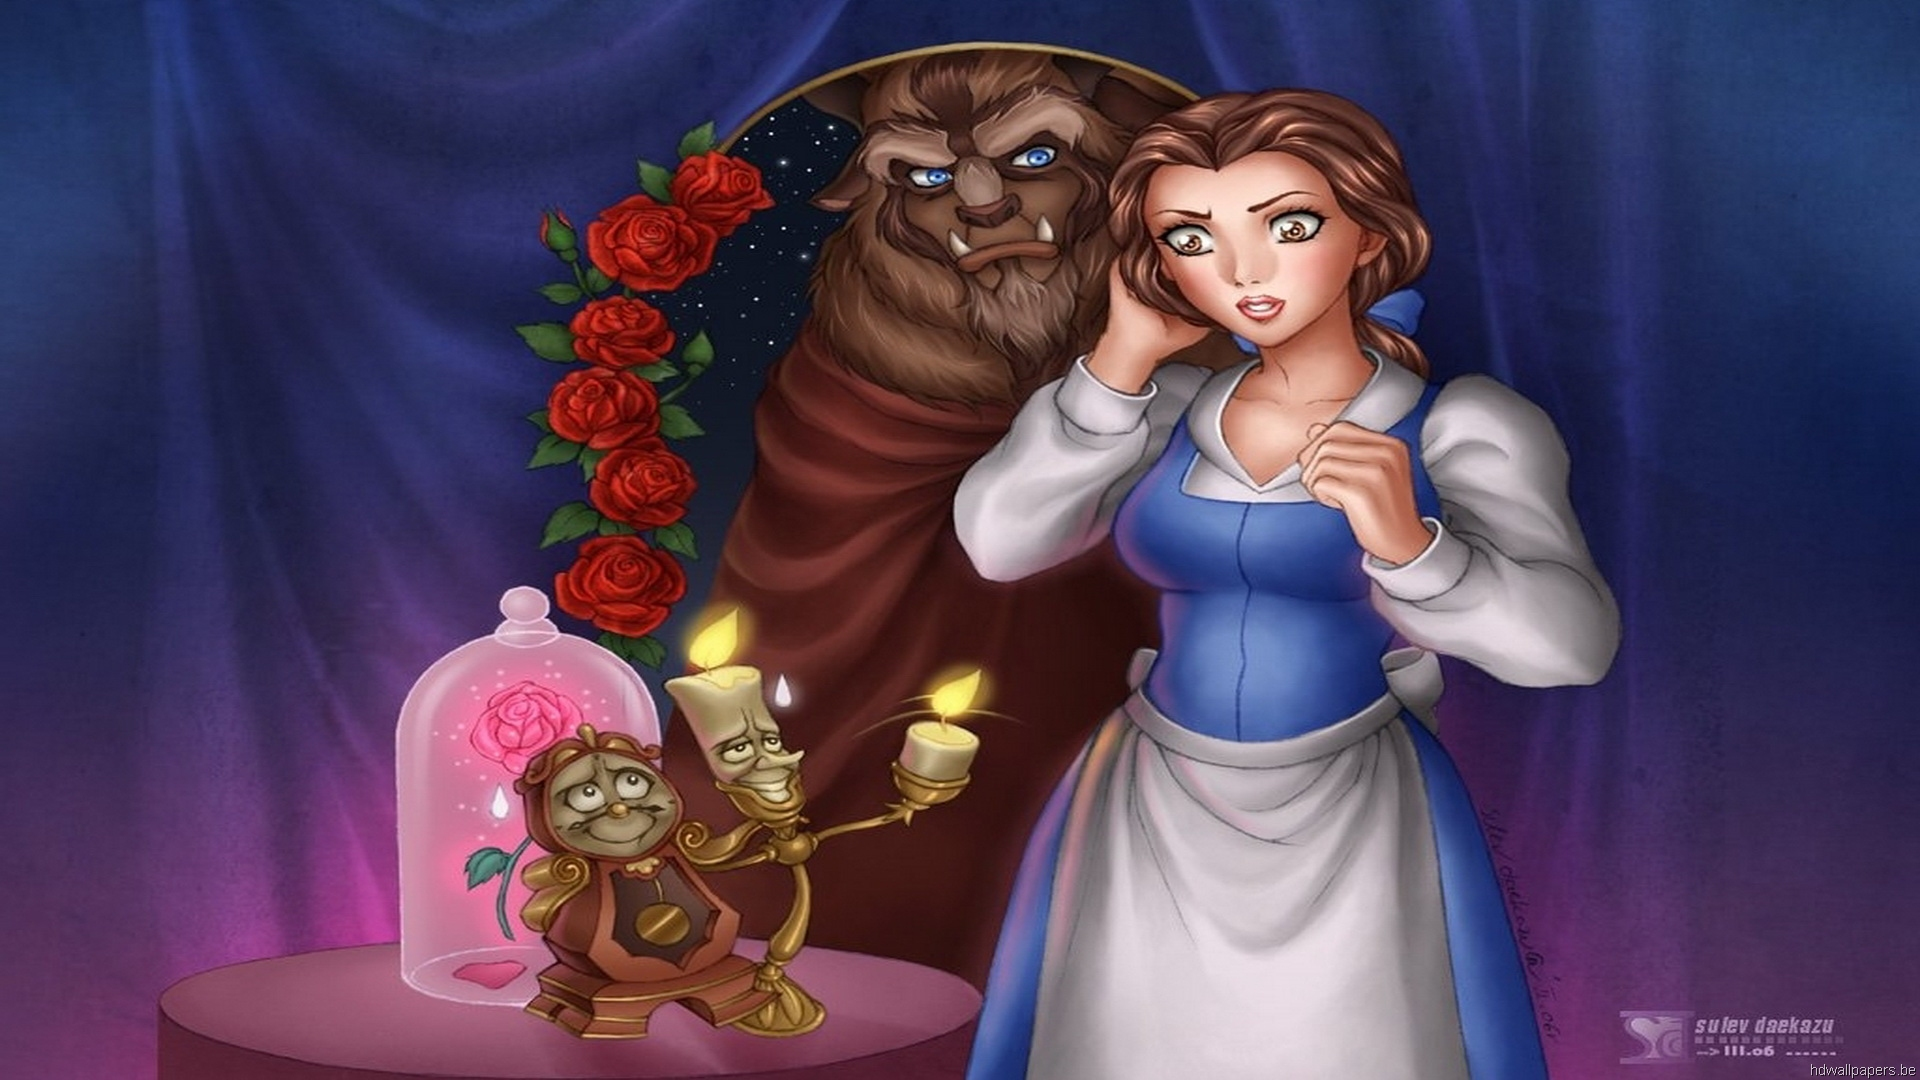 The Beauty and The Beast